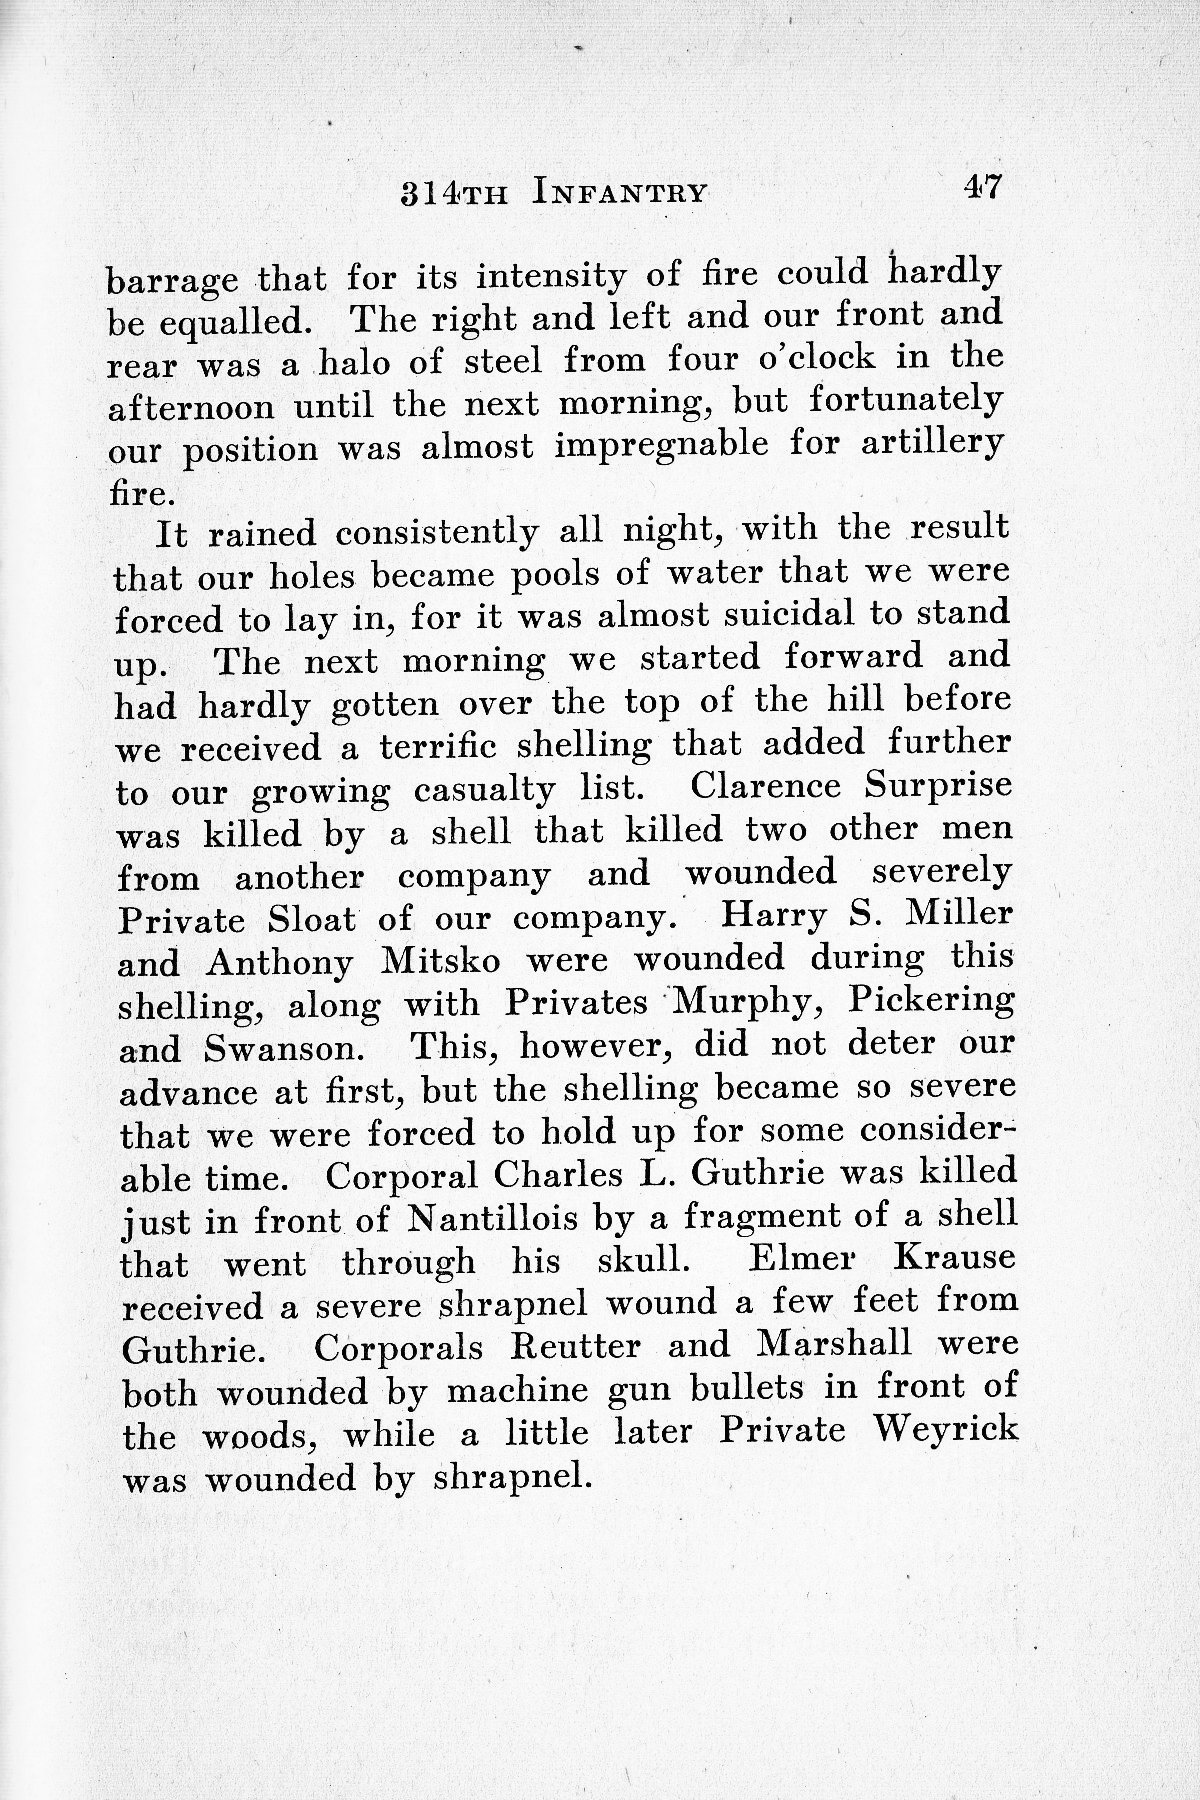 History of Company G 314th Infanty - Page 047